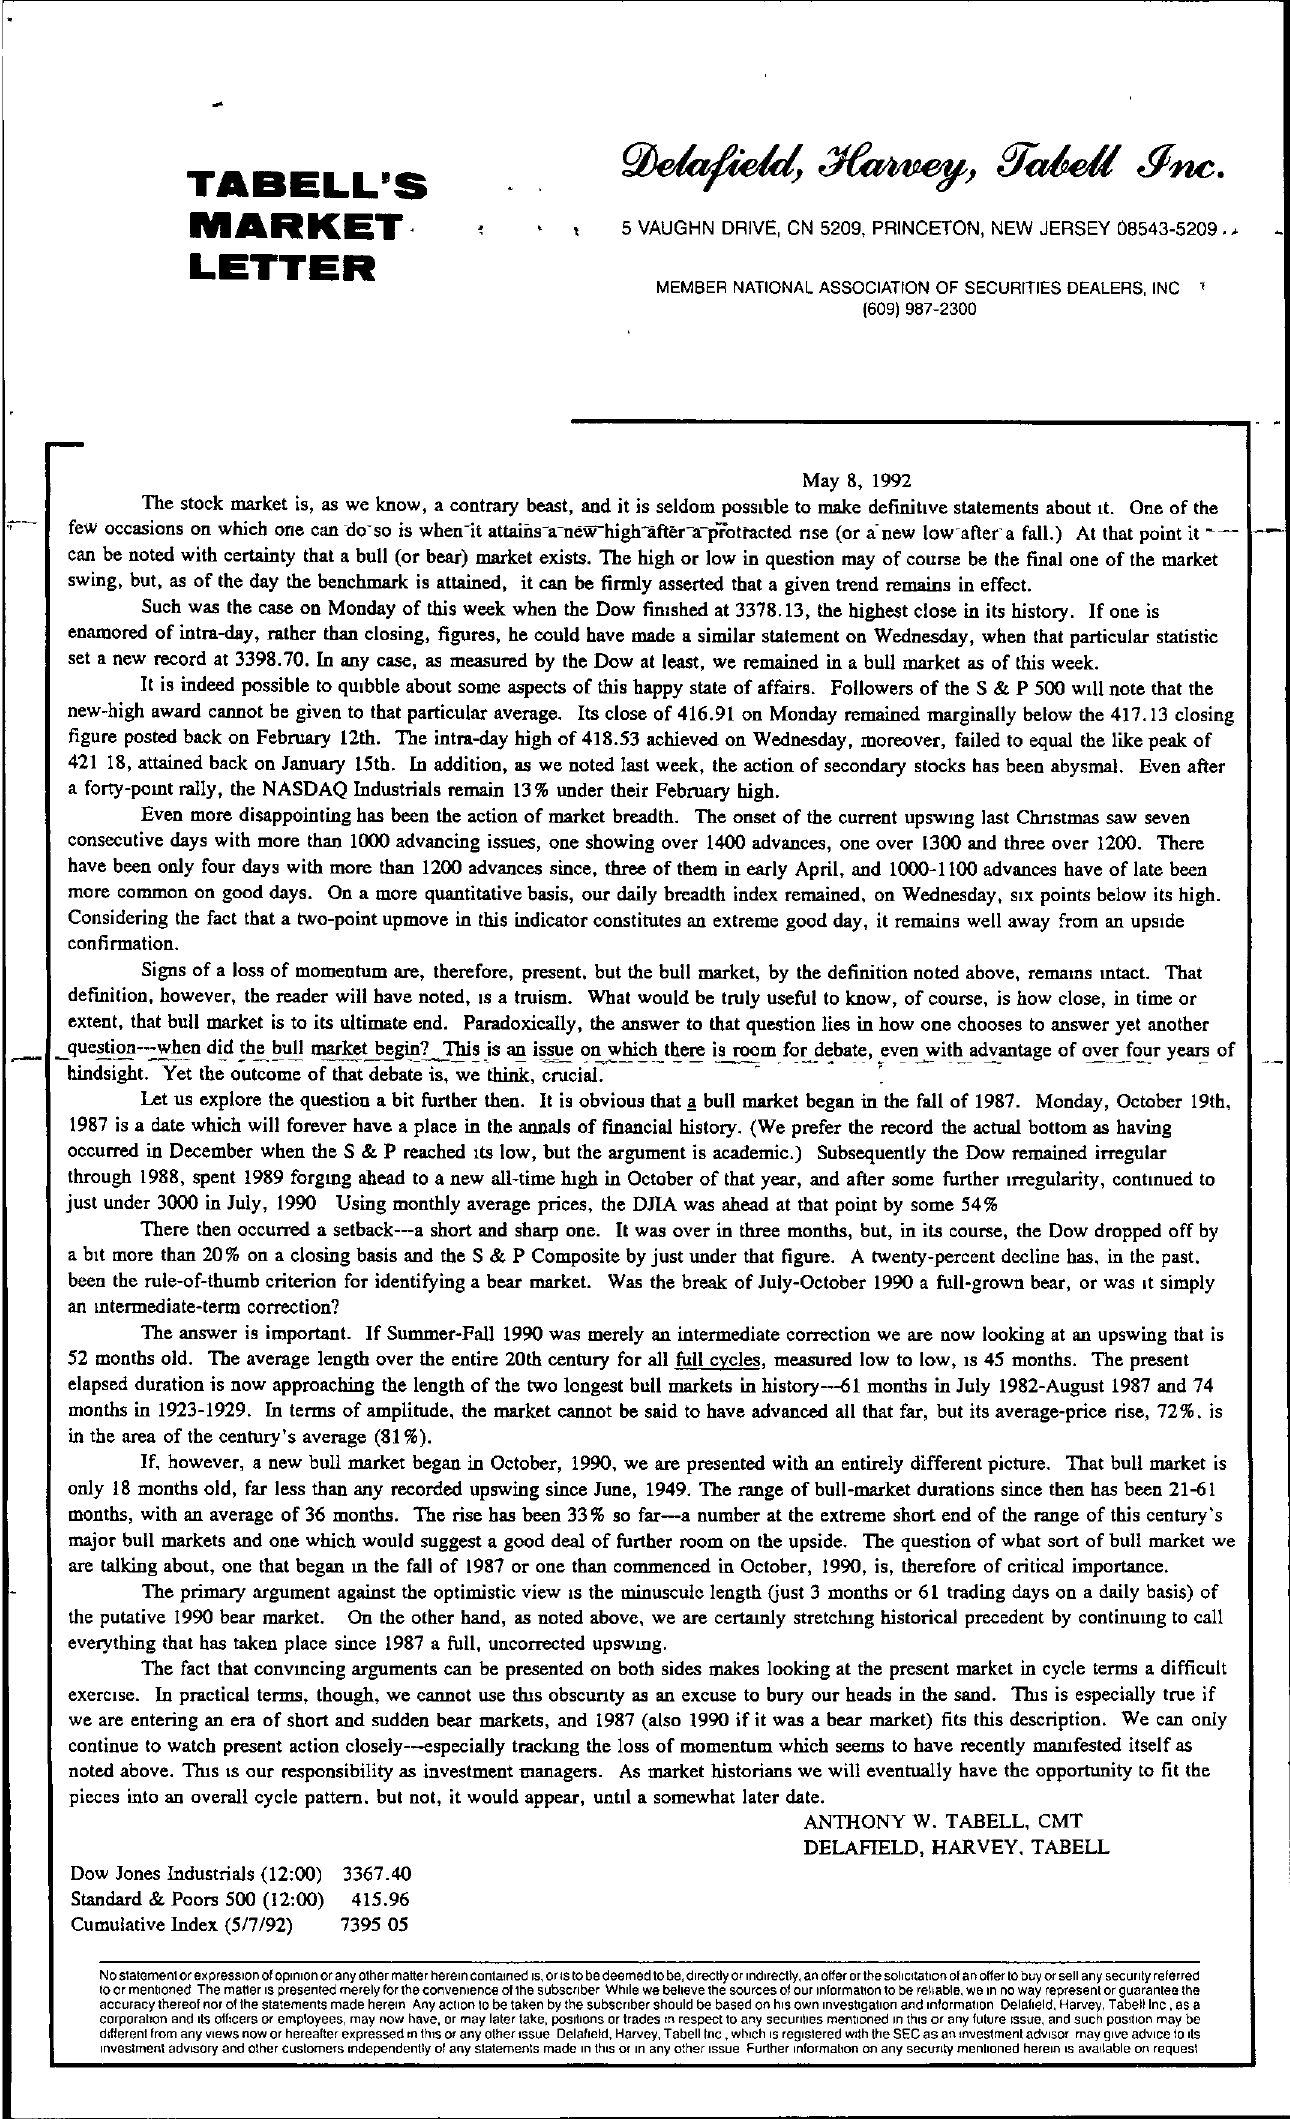 Tabell's Market Letter - May 08, 1992